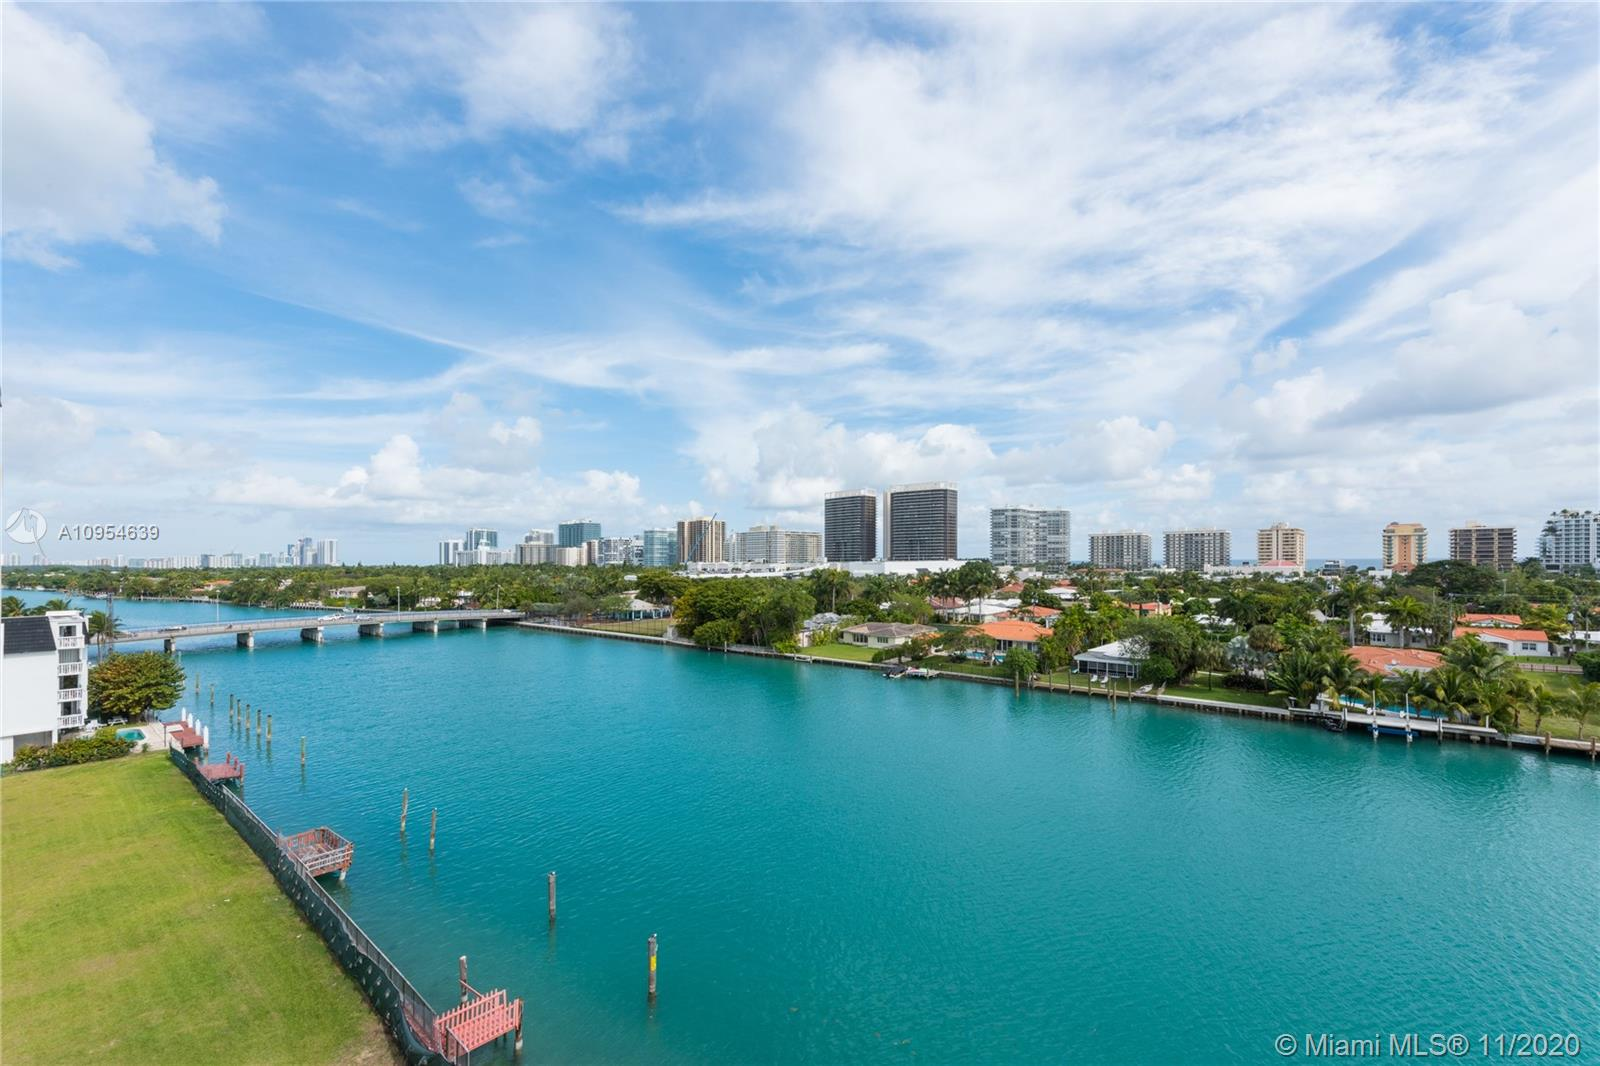 "AMAZING 3BR/3Ba, 2,470 SF, MiMo waterfront Penthouse w protected direct Ocean, Indian Creek, wide-angle Views throughout. Curated, sun-drenched home feat. dual master suites w walk-in closets, 3rd BR/Office, w spacious island-inspired terrace. Beautiful Italian Carrera/Wood Porcelanosa floors throughout. Steam shower w water closet in S master, updated kitchen, antq marble decorative fire-plc, Adelman chandeliers, duo zone A/C, Shutters. Walk to ""A"" K-8 public school, Beach, Parks, Bal Harbour Shops, Fine Dining. Low HOA."